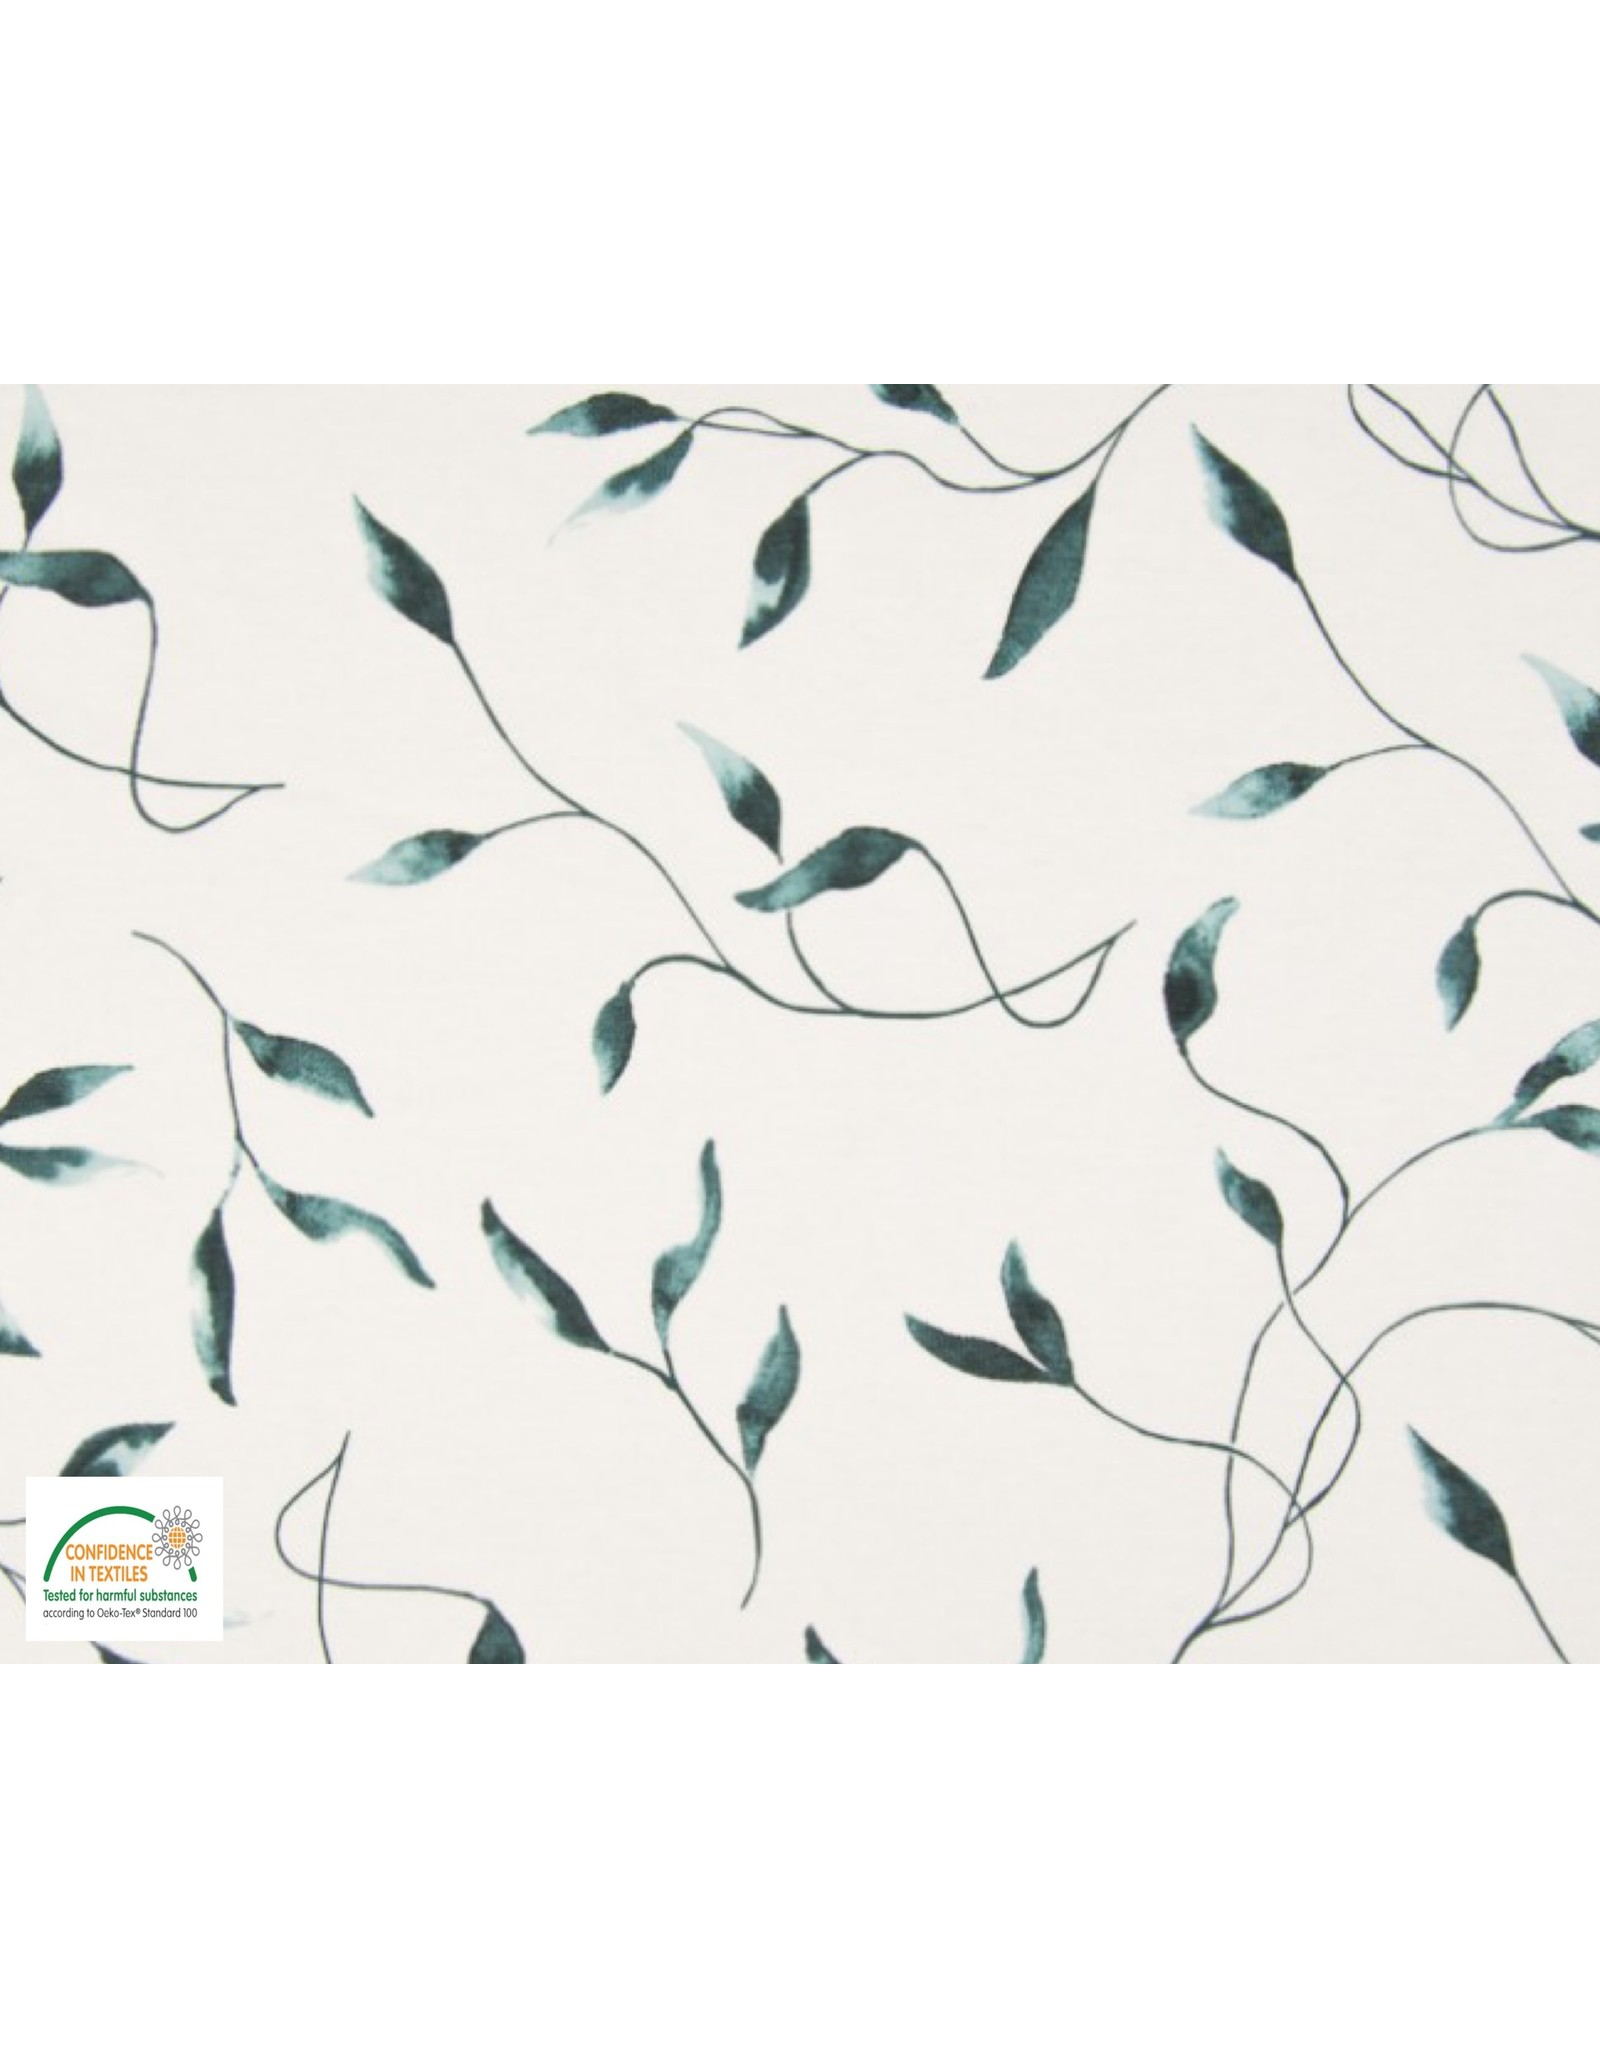 Qjutie Collection Qjutie tricot leaves dusty green